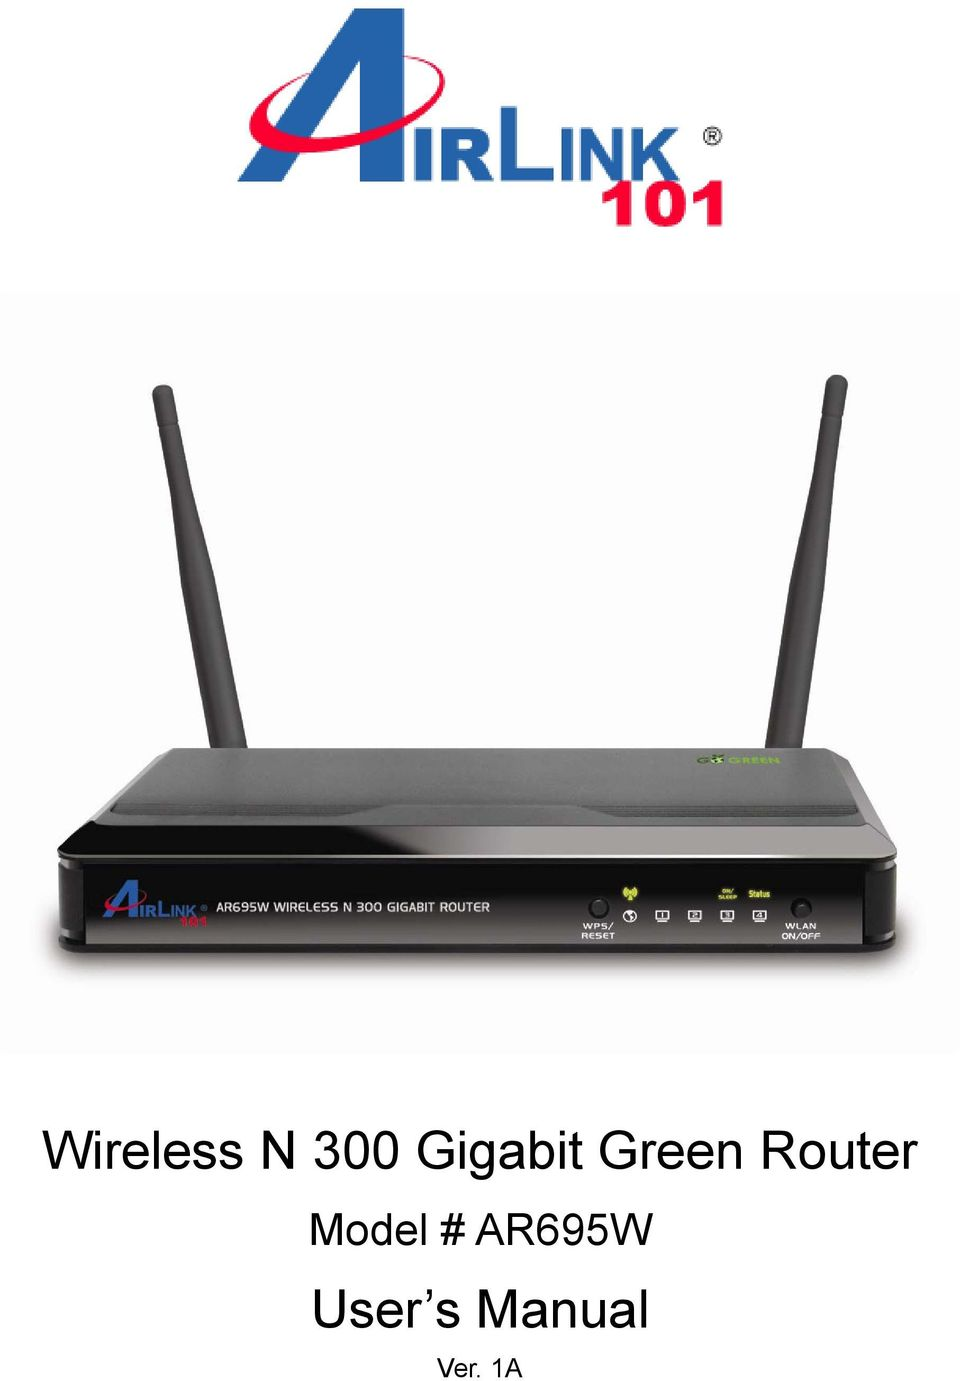 Router Model #